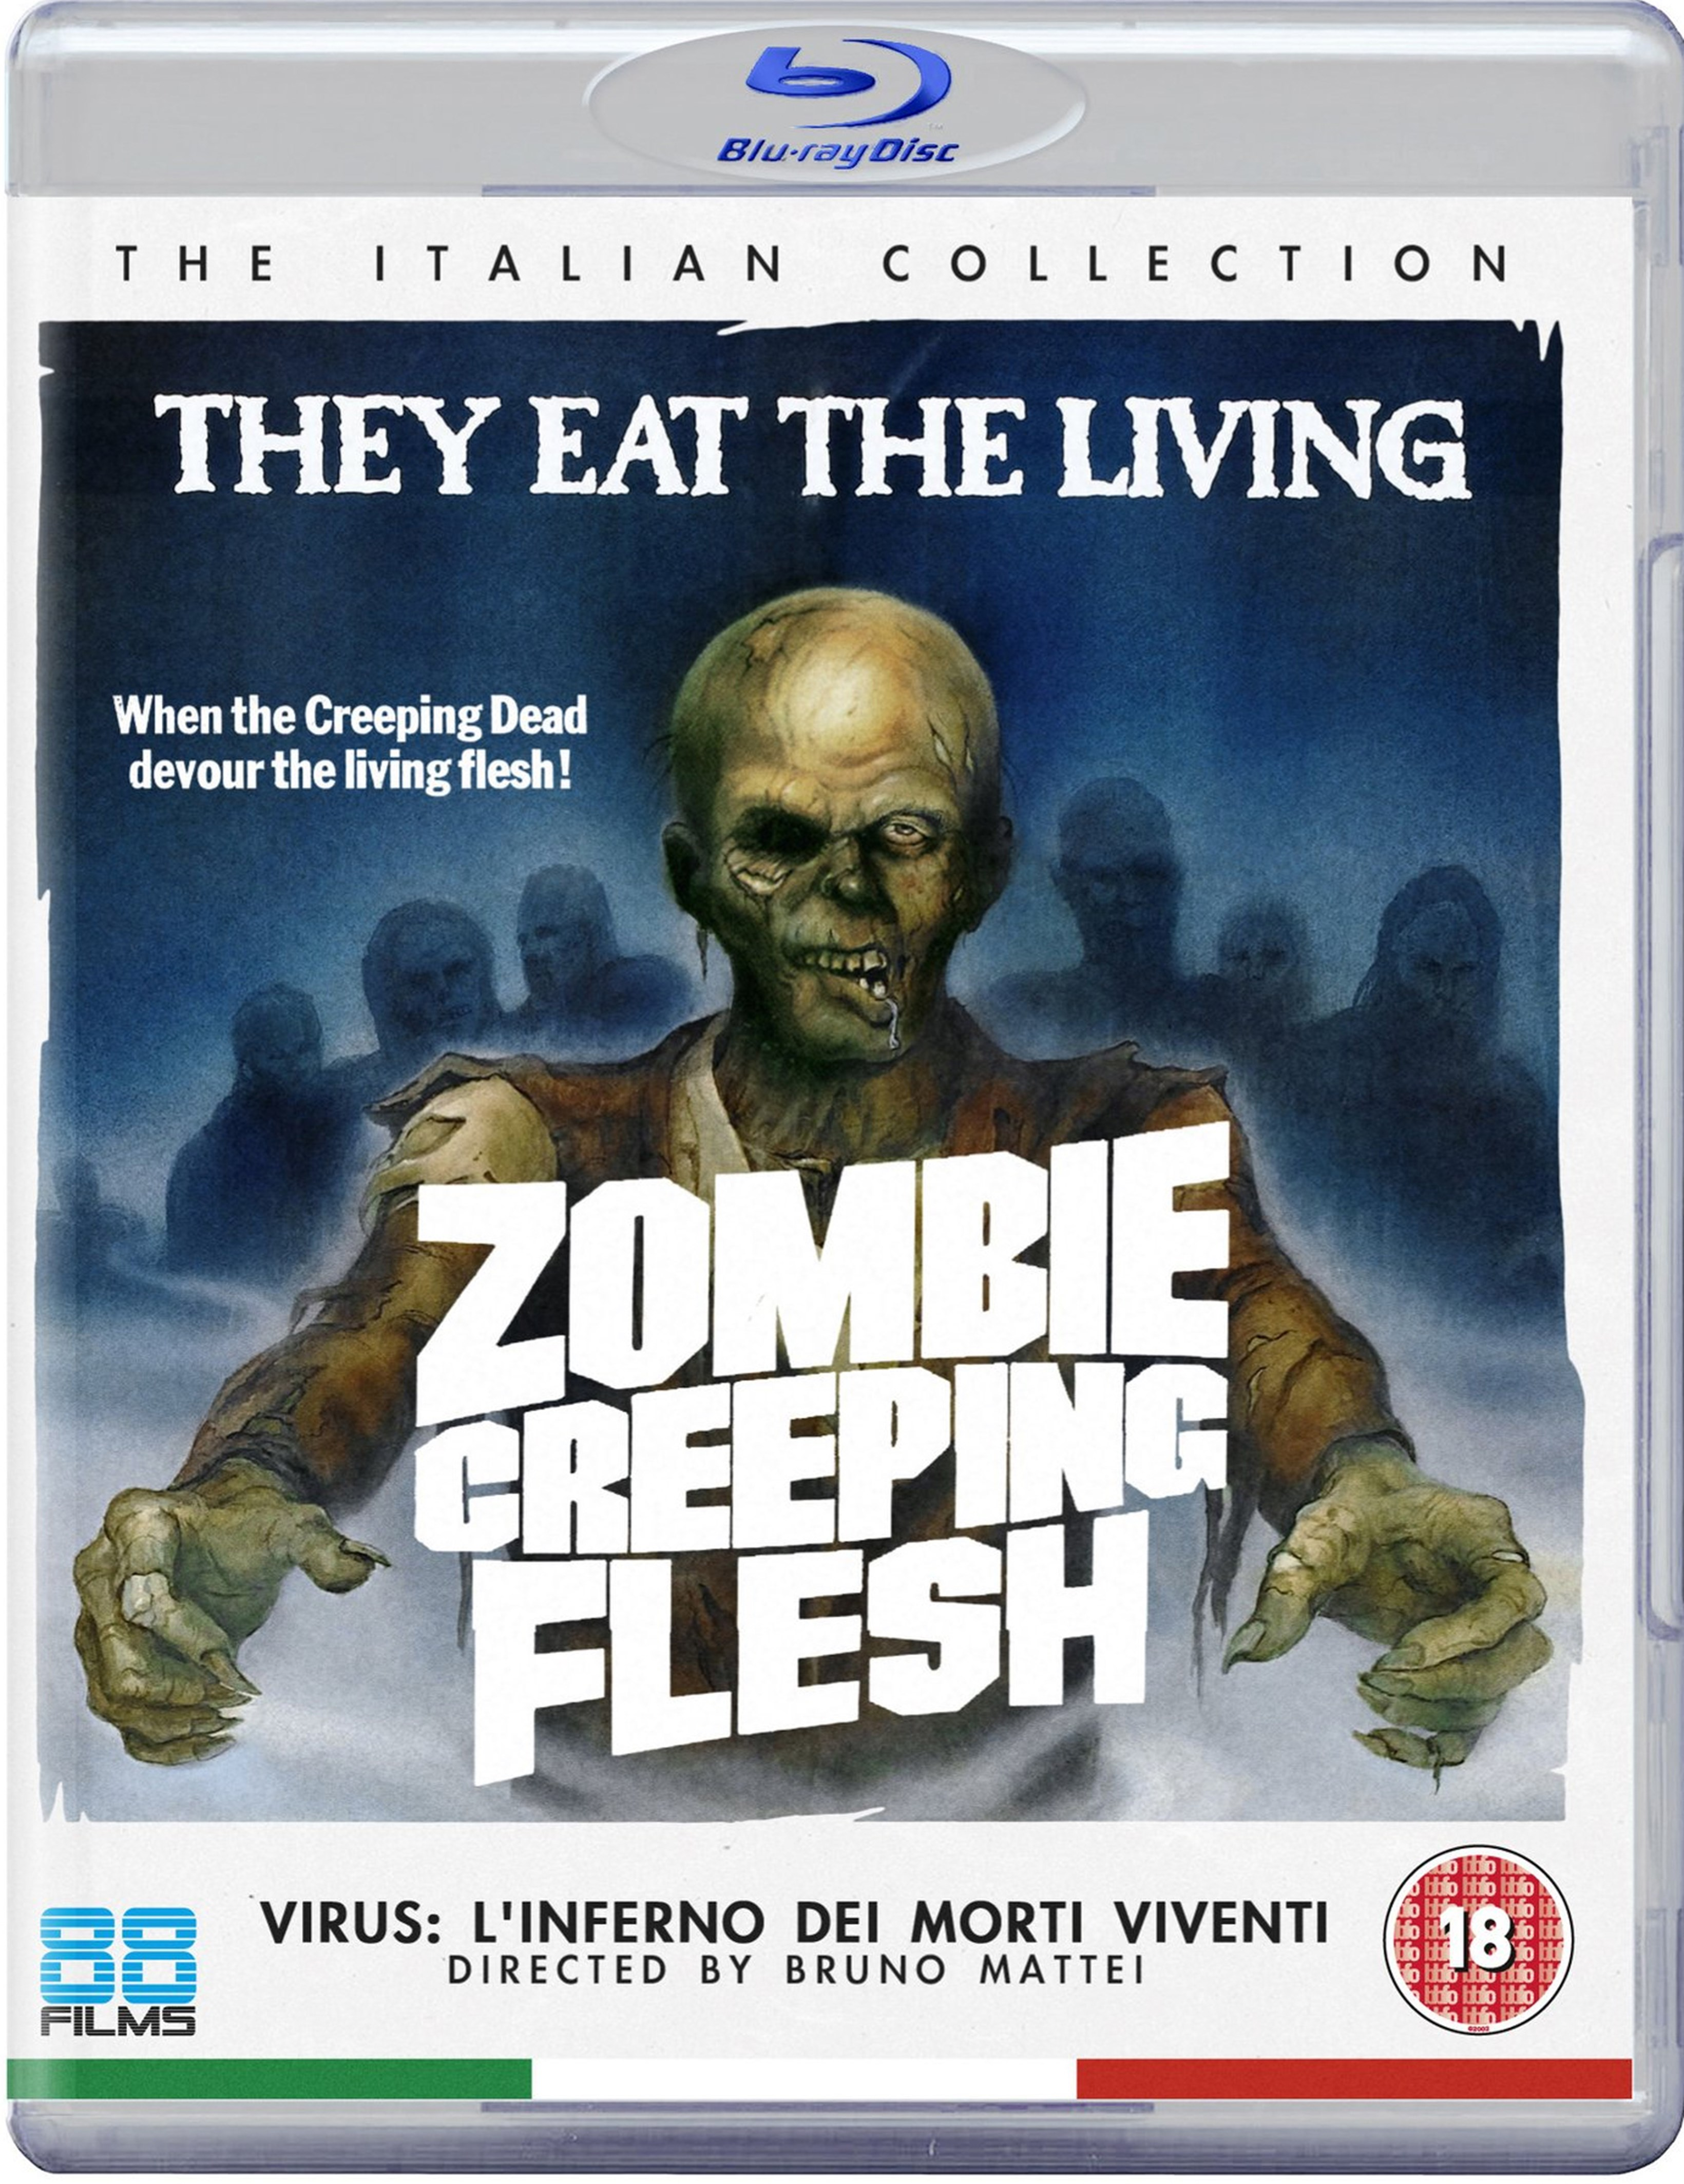 Zombie Creeping Flesh - 1